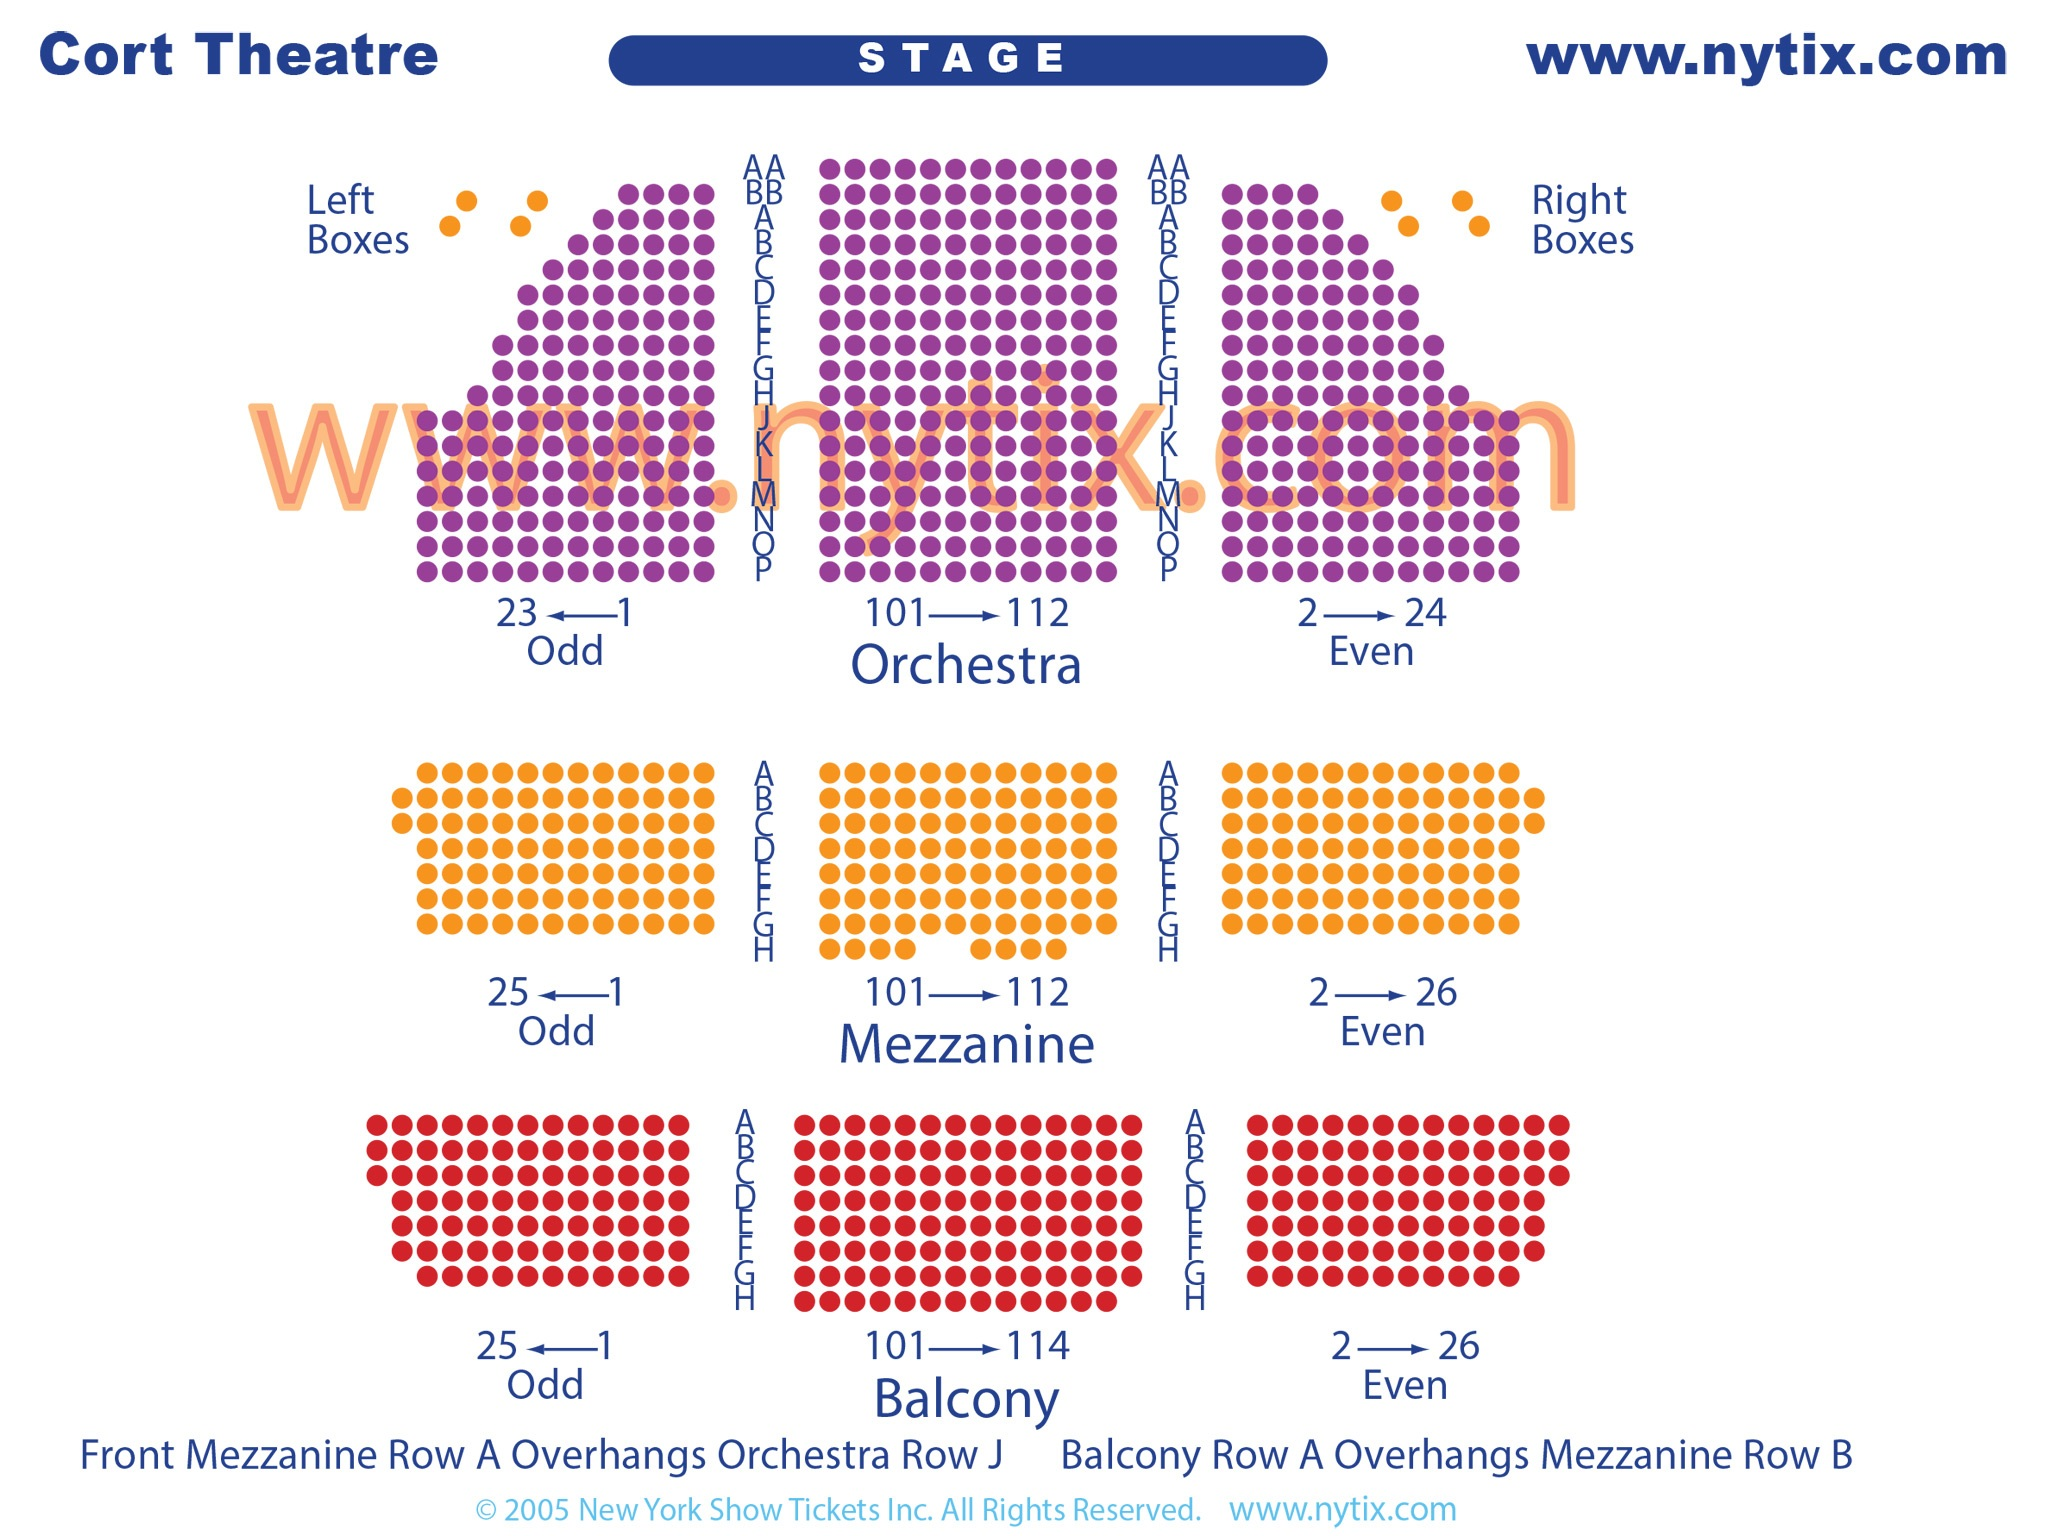 Cort Theatre Seating Chart